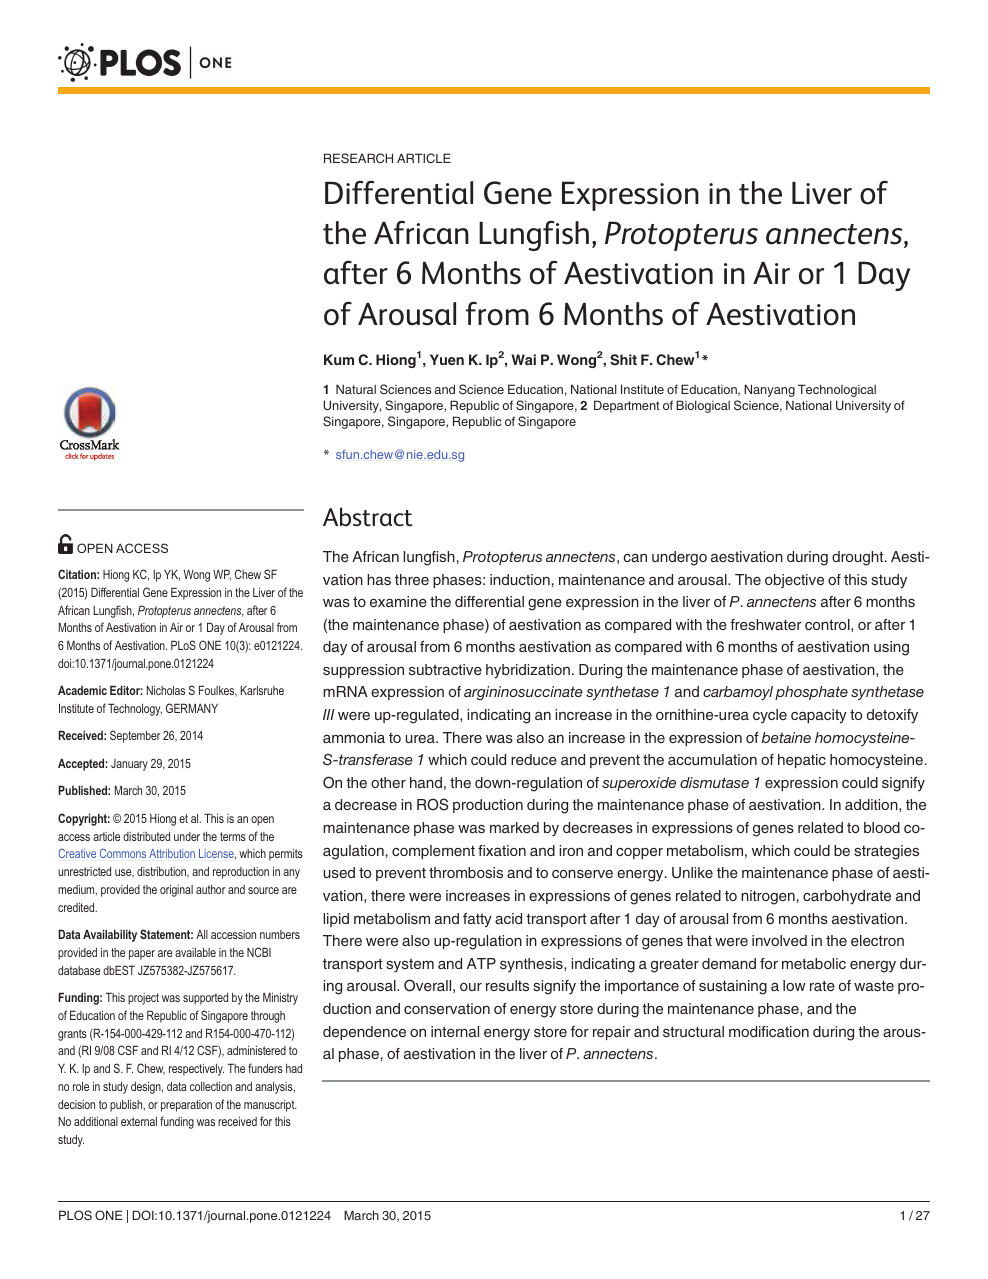 Differential Gene Expression in the Liver of the African